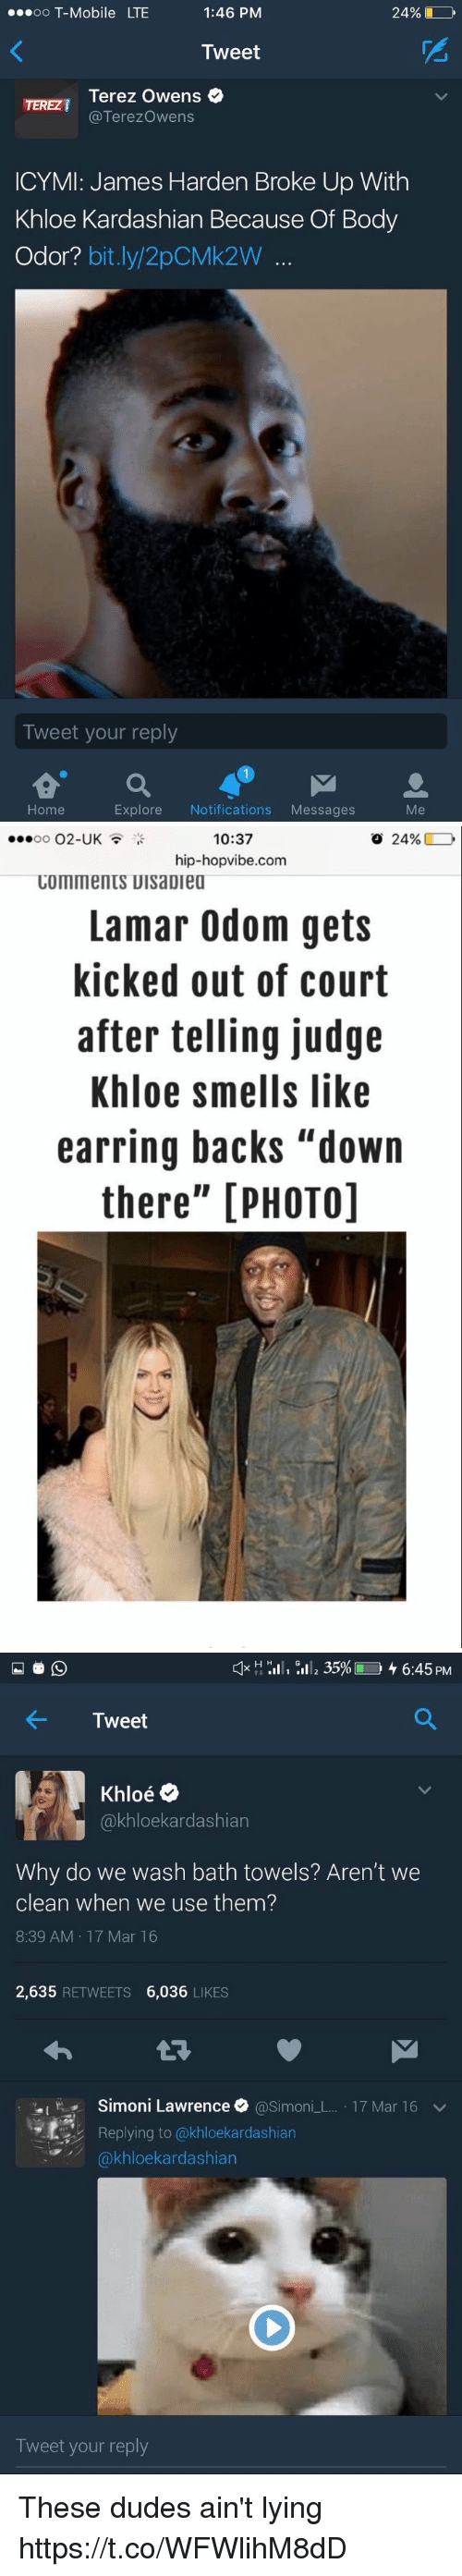 "James Harden, Khloe Kardashian, and Lamar Odom: OO  T-Mobile LTE  1:46 PM  24%  Tweet  Terez Owens  Terezowens  ICYMI: James Harden Broke Up With  Khloe Kardashian Because Of Body  Odor?  bit.ly 2pCMk2W  Tweet your reply  Explore  Notifications  Messages  Home   10:37  o 24%  OO  O2-UK  hip-hopvibe.com  COMMentS UIsaDiea  Lamar Odom gets  kicked out of court  after telling judge  Khloe smells like  earring backs ""down  there"" [PHOTO]   H H  III, 35% 4 6:45 PM  4- Tweet  Oe  akhloekardashian  Why do we wash bath towels? Aren't we  clean when we use them?  8:39 AM 17 Mar 16  2,635  RETWEETS  6,036  LIKES  .I Simoni Lawrence  @Simon  L. 17 Mar 16 v  Replying to (akhloekardashian  kardashian  Tweet your reply These dudes ain't lying https://t.co/WFWlihM8dD"